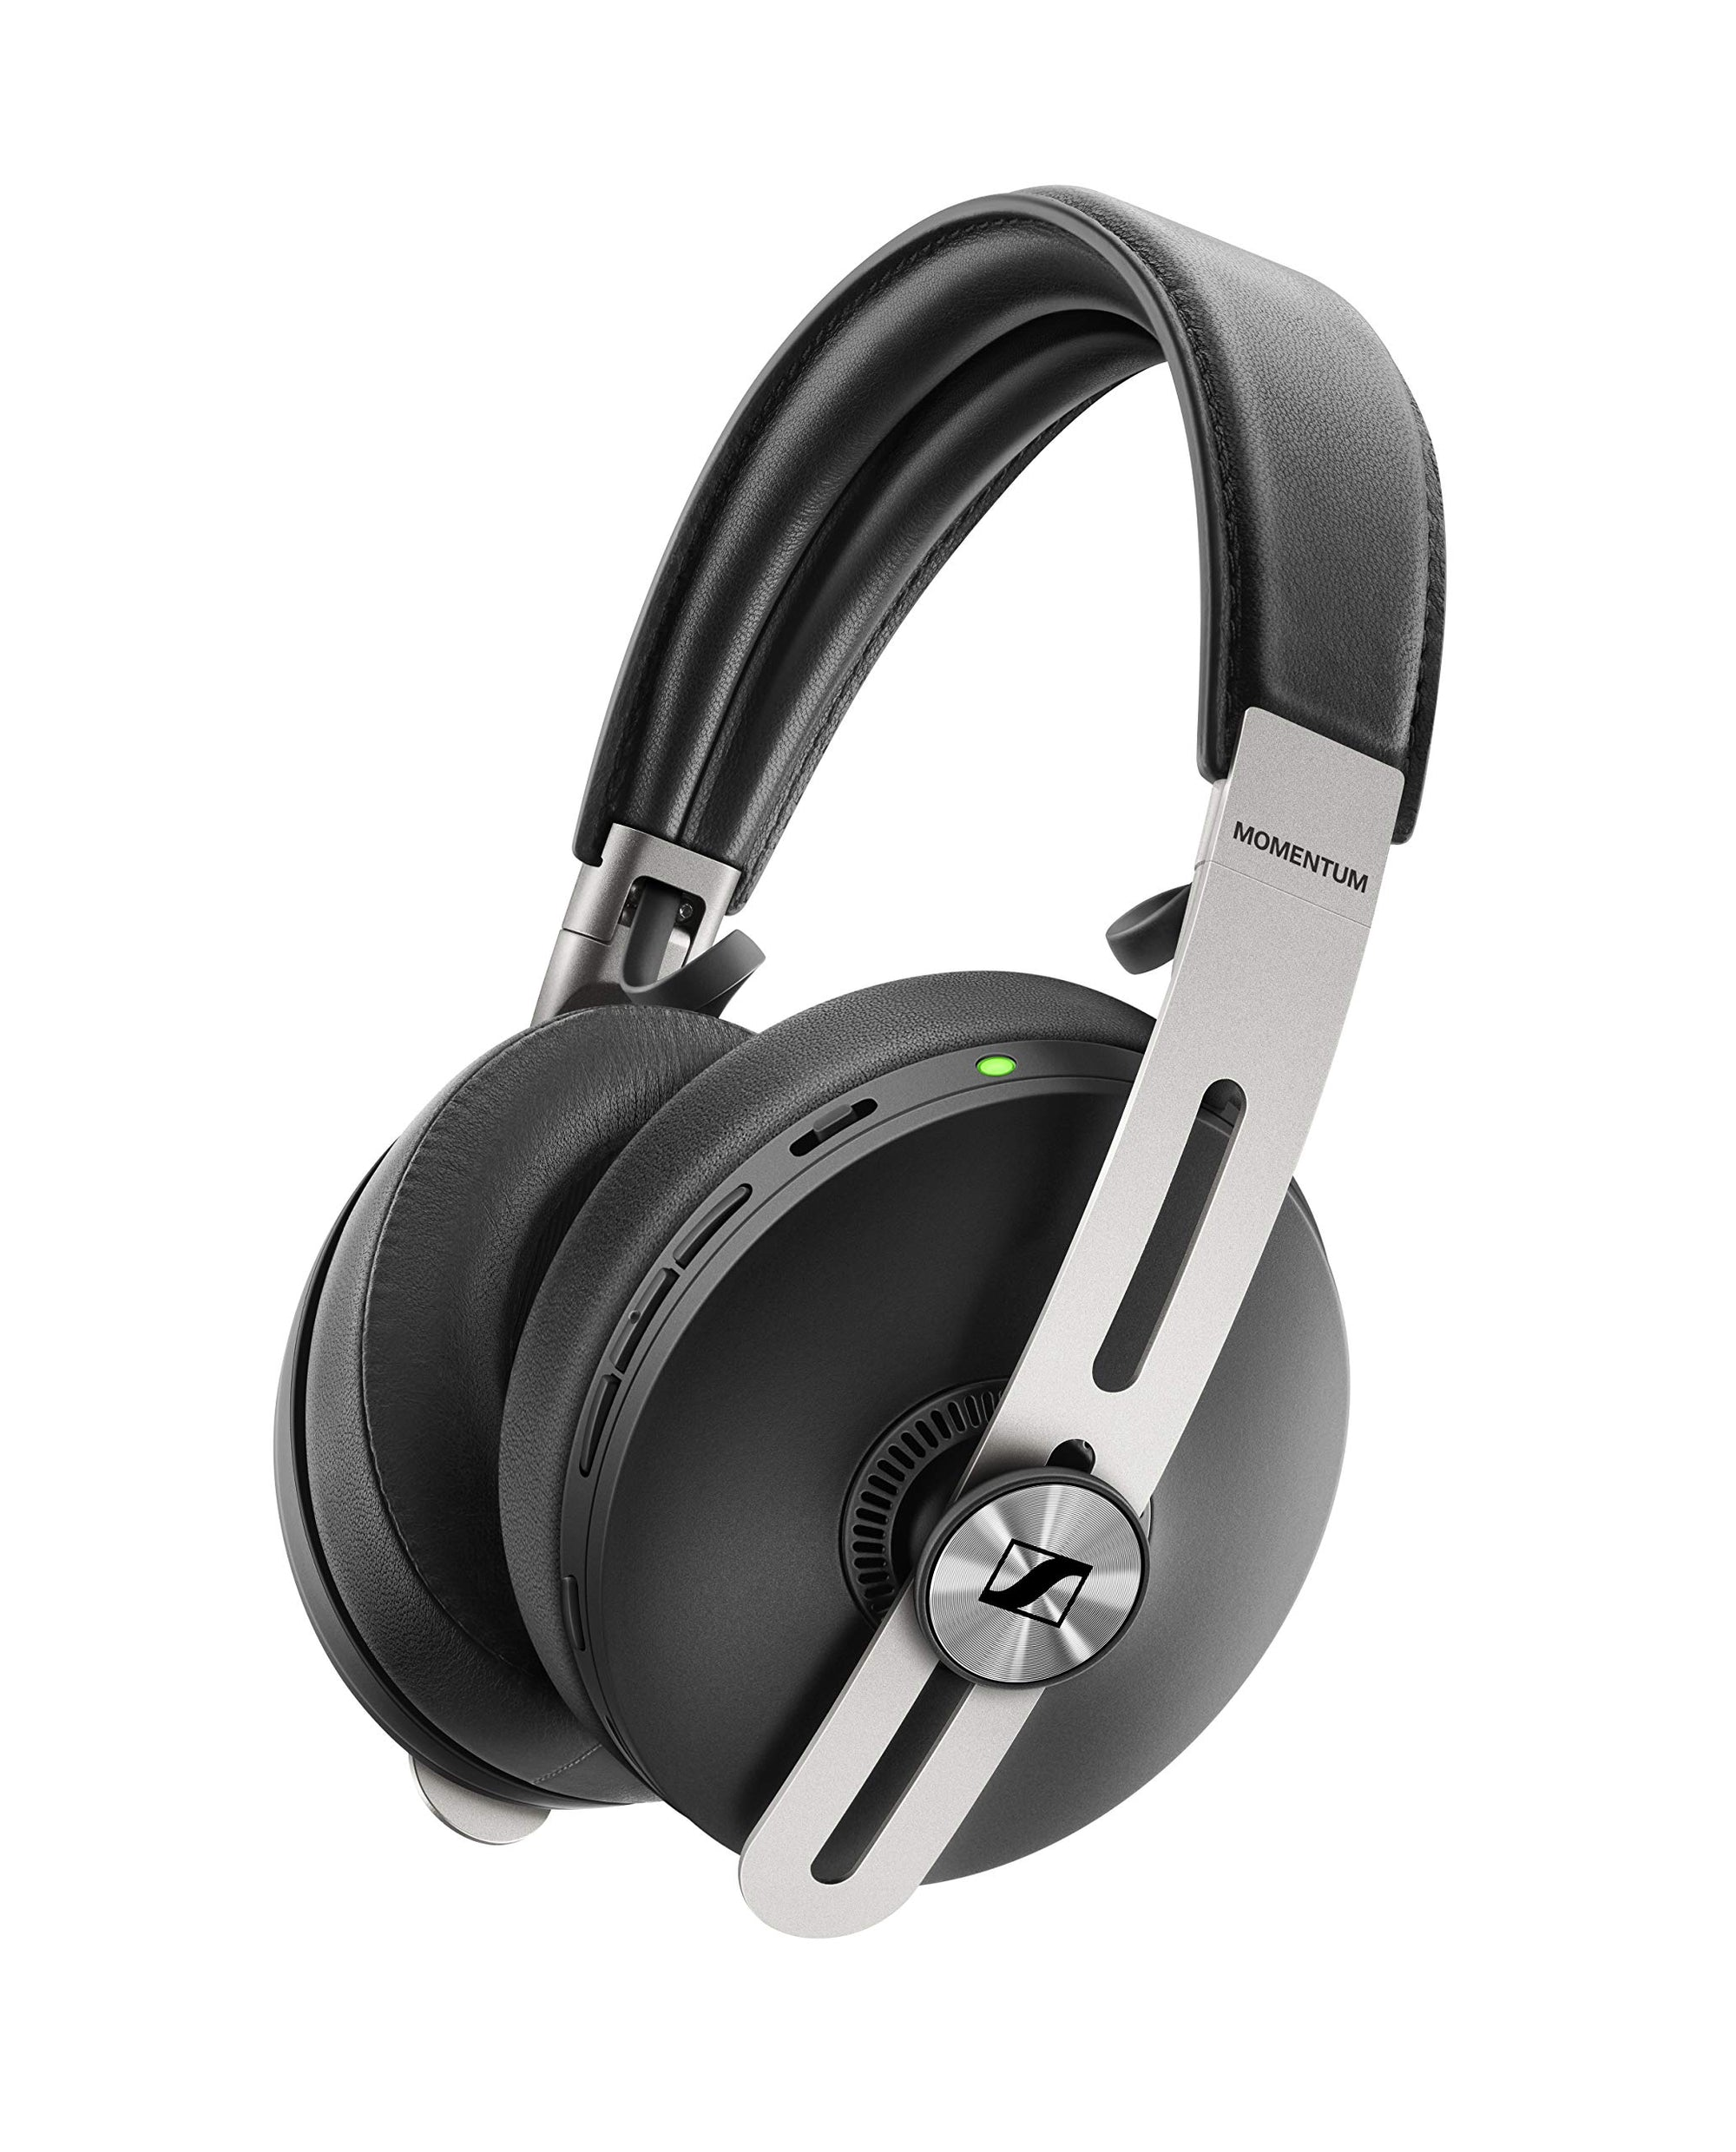 Momentum 3 Wireless Noise Cancelling Headphones